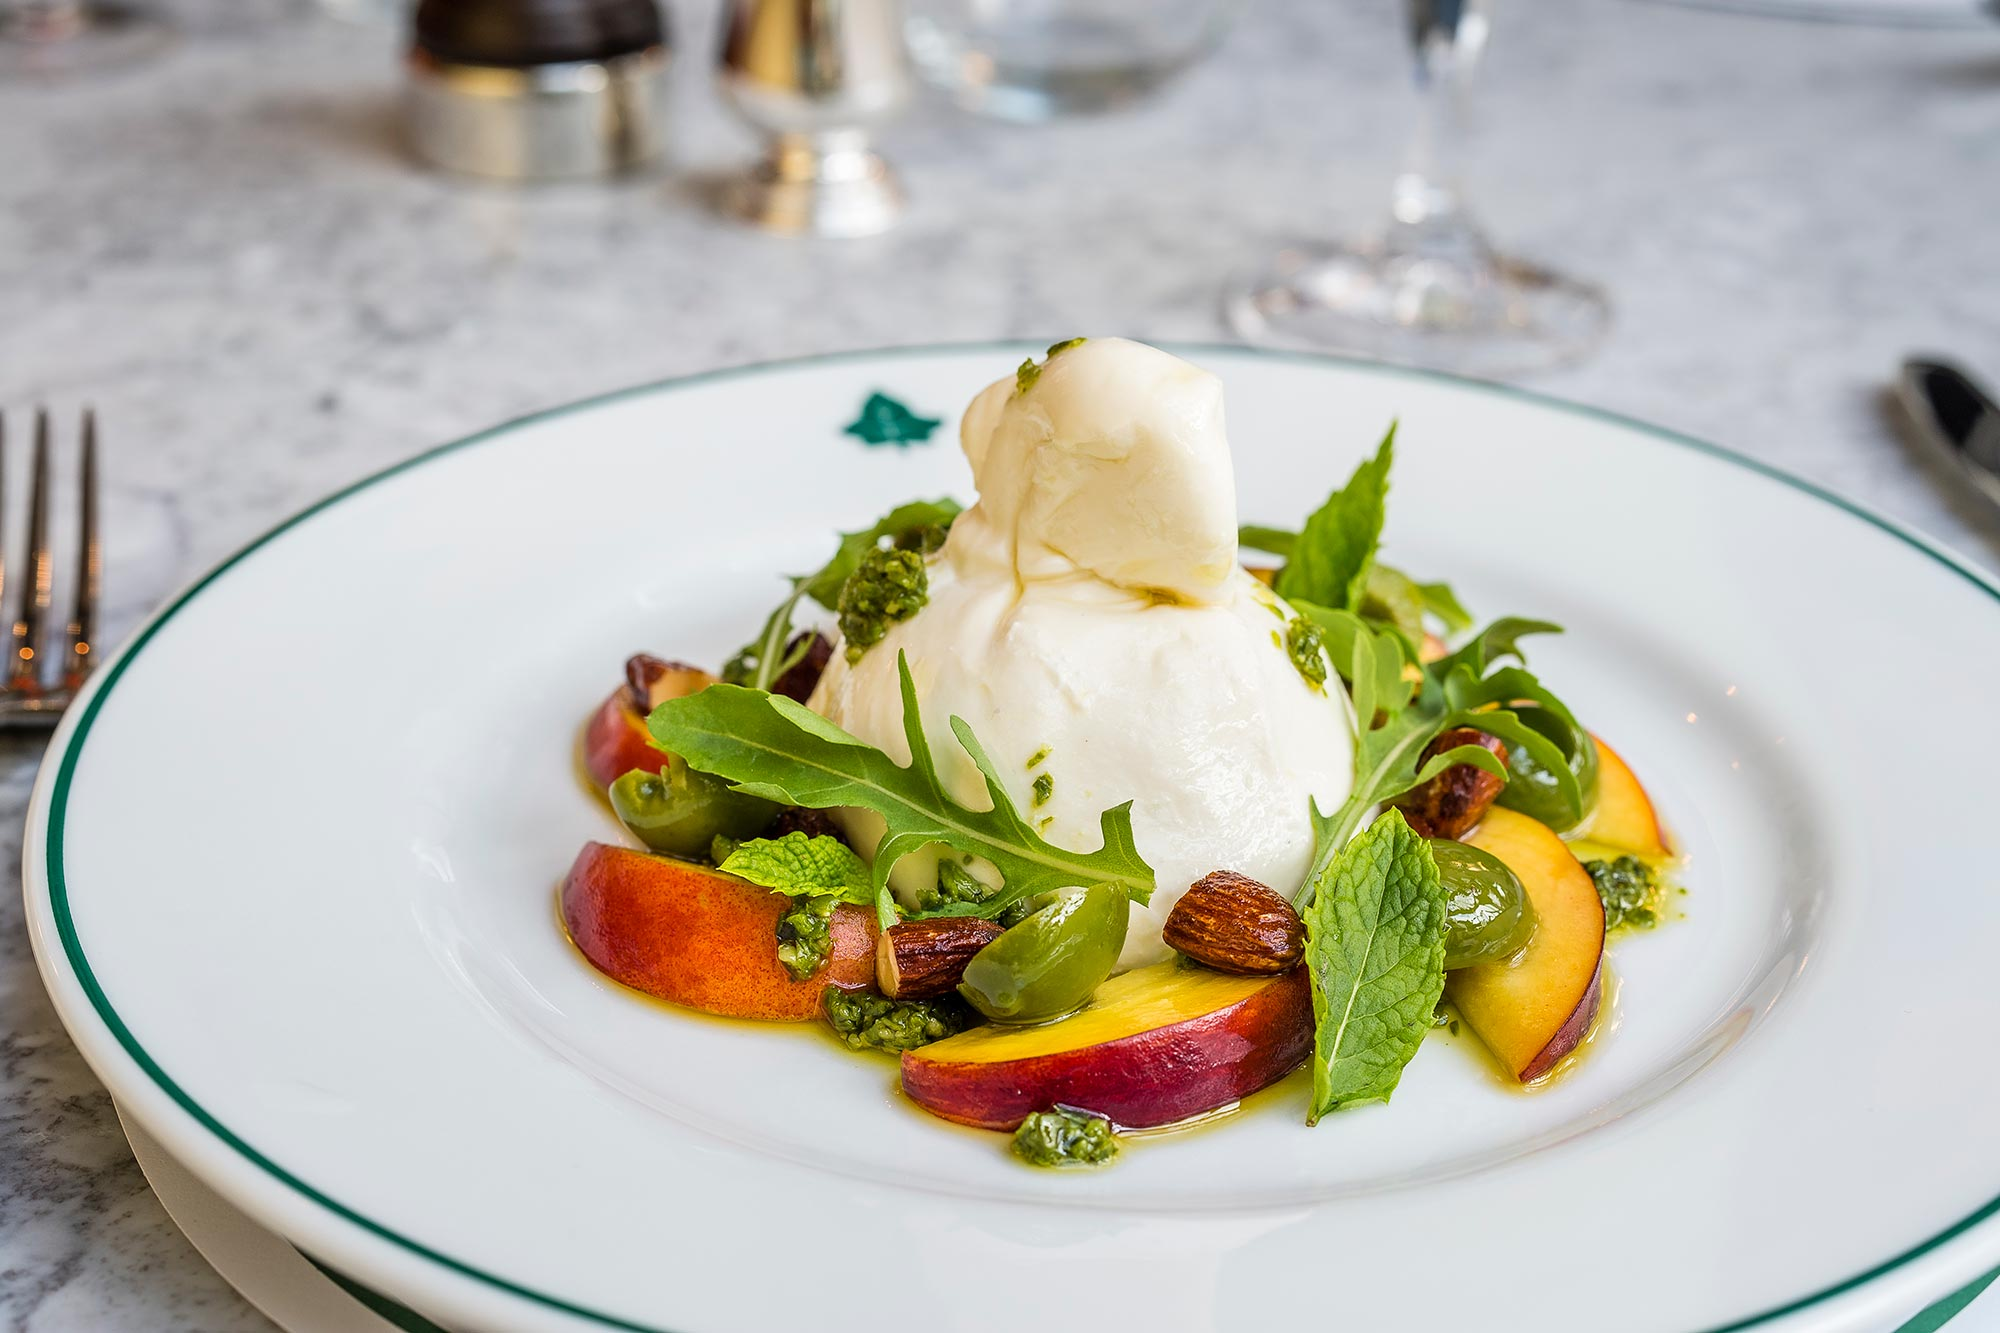 The Ivy Marlow Garden - Burrata with Nocellara olive, pesto, rocket and almonds - The Ivy Marlow Garden